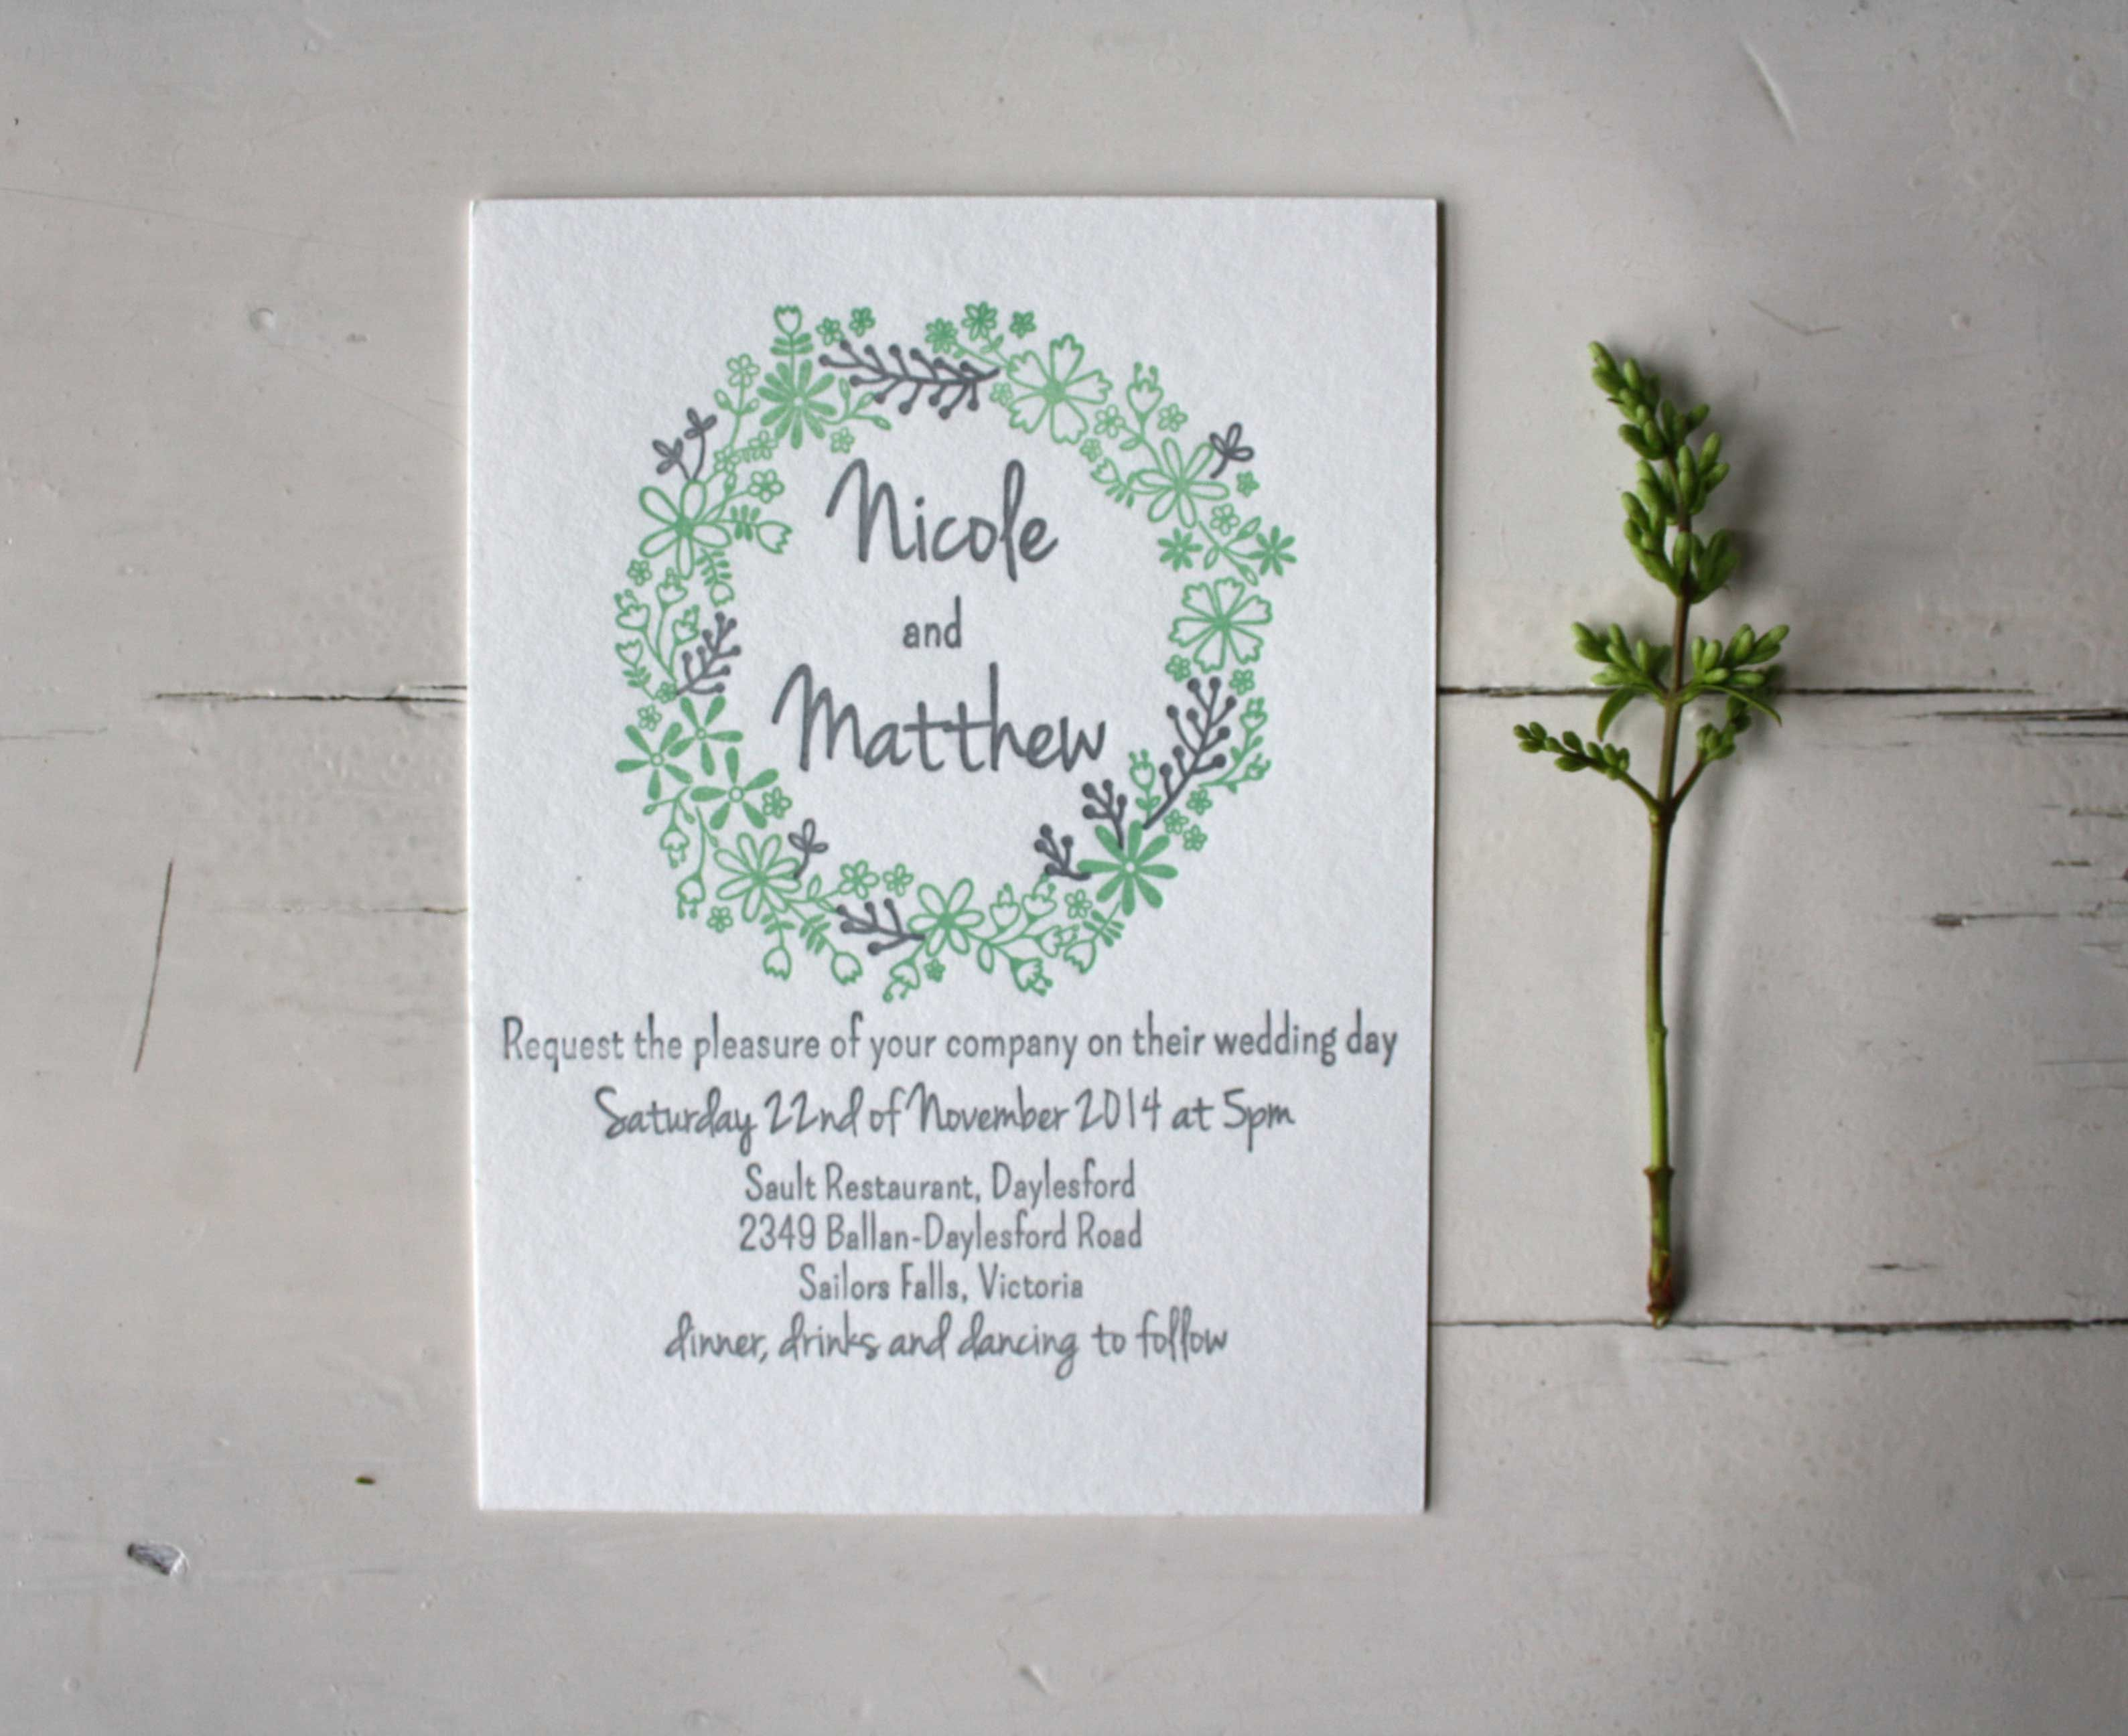 Be inspired by this Spring Themed Floral Letterpress Wedding invitation created and printed by www.cocopress.com.au